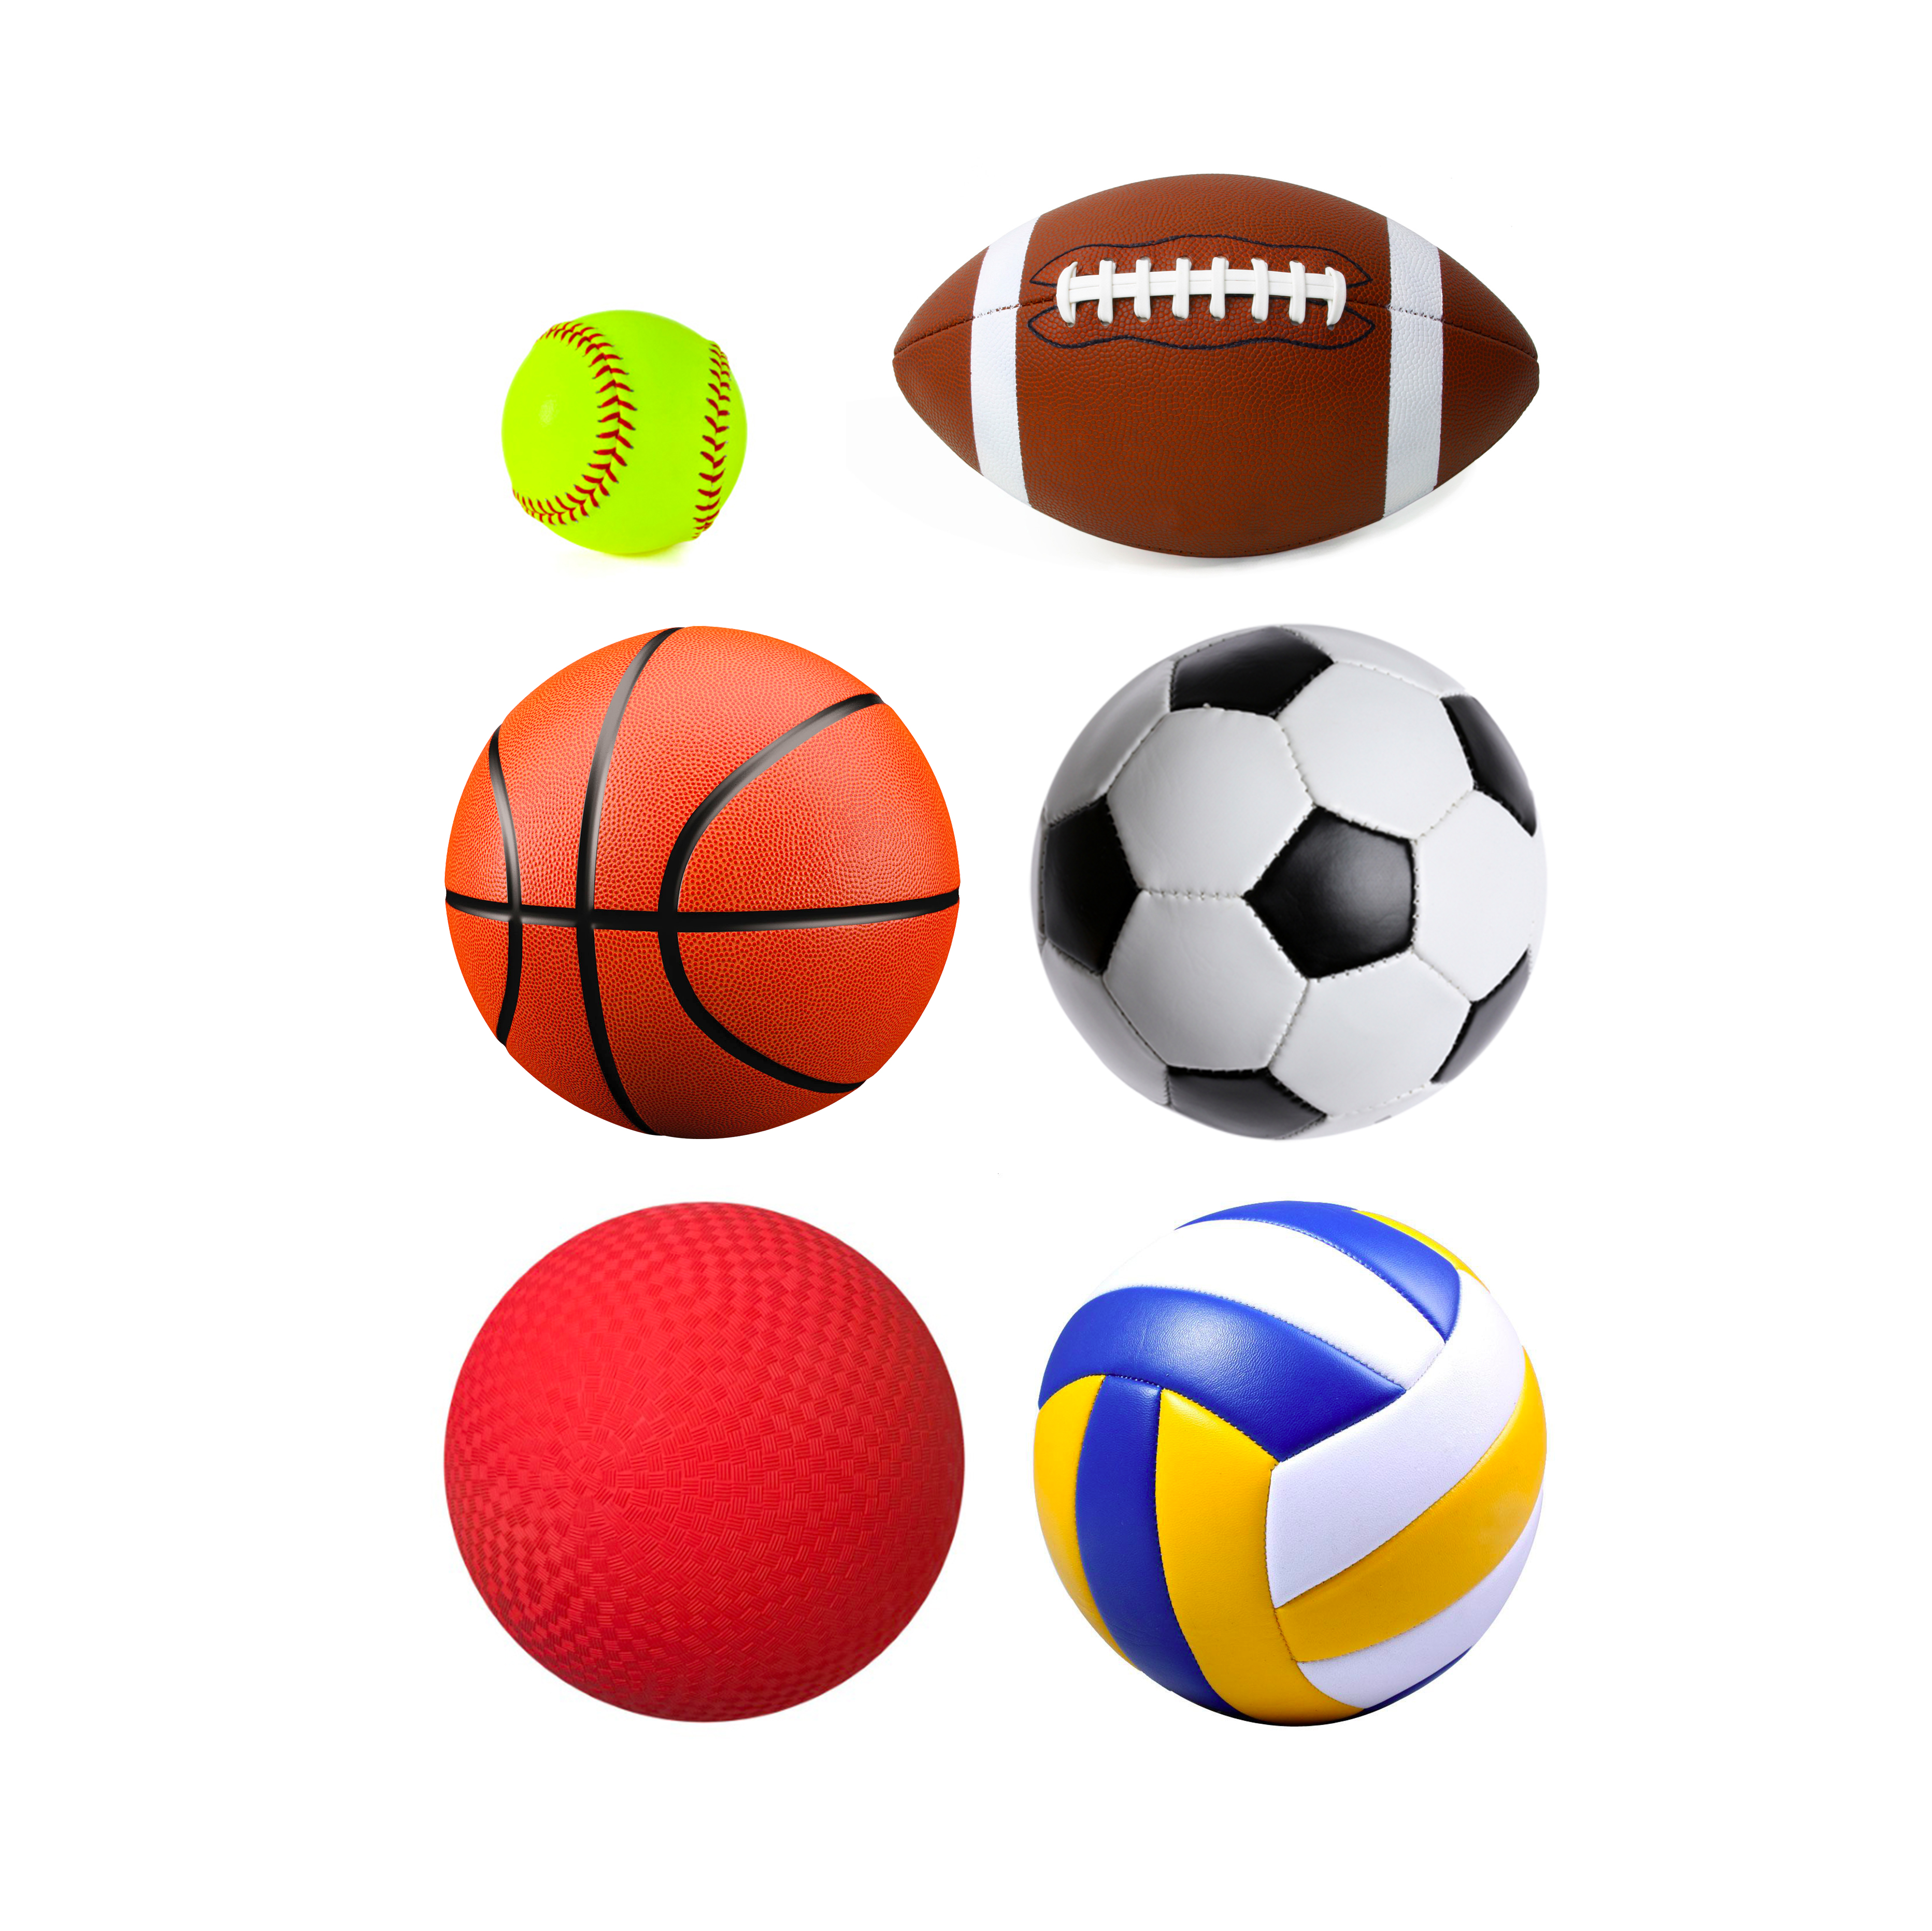 3729x3728 Assorted Sport Balls Byu Outdoors Unlimited